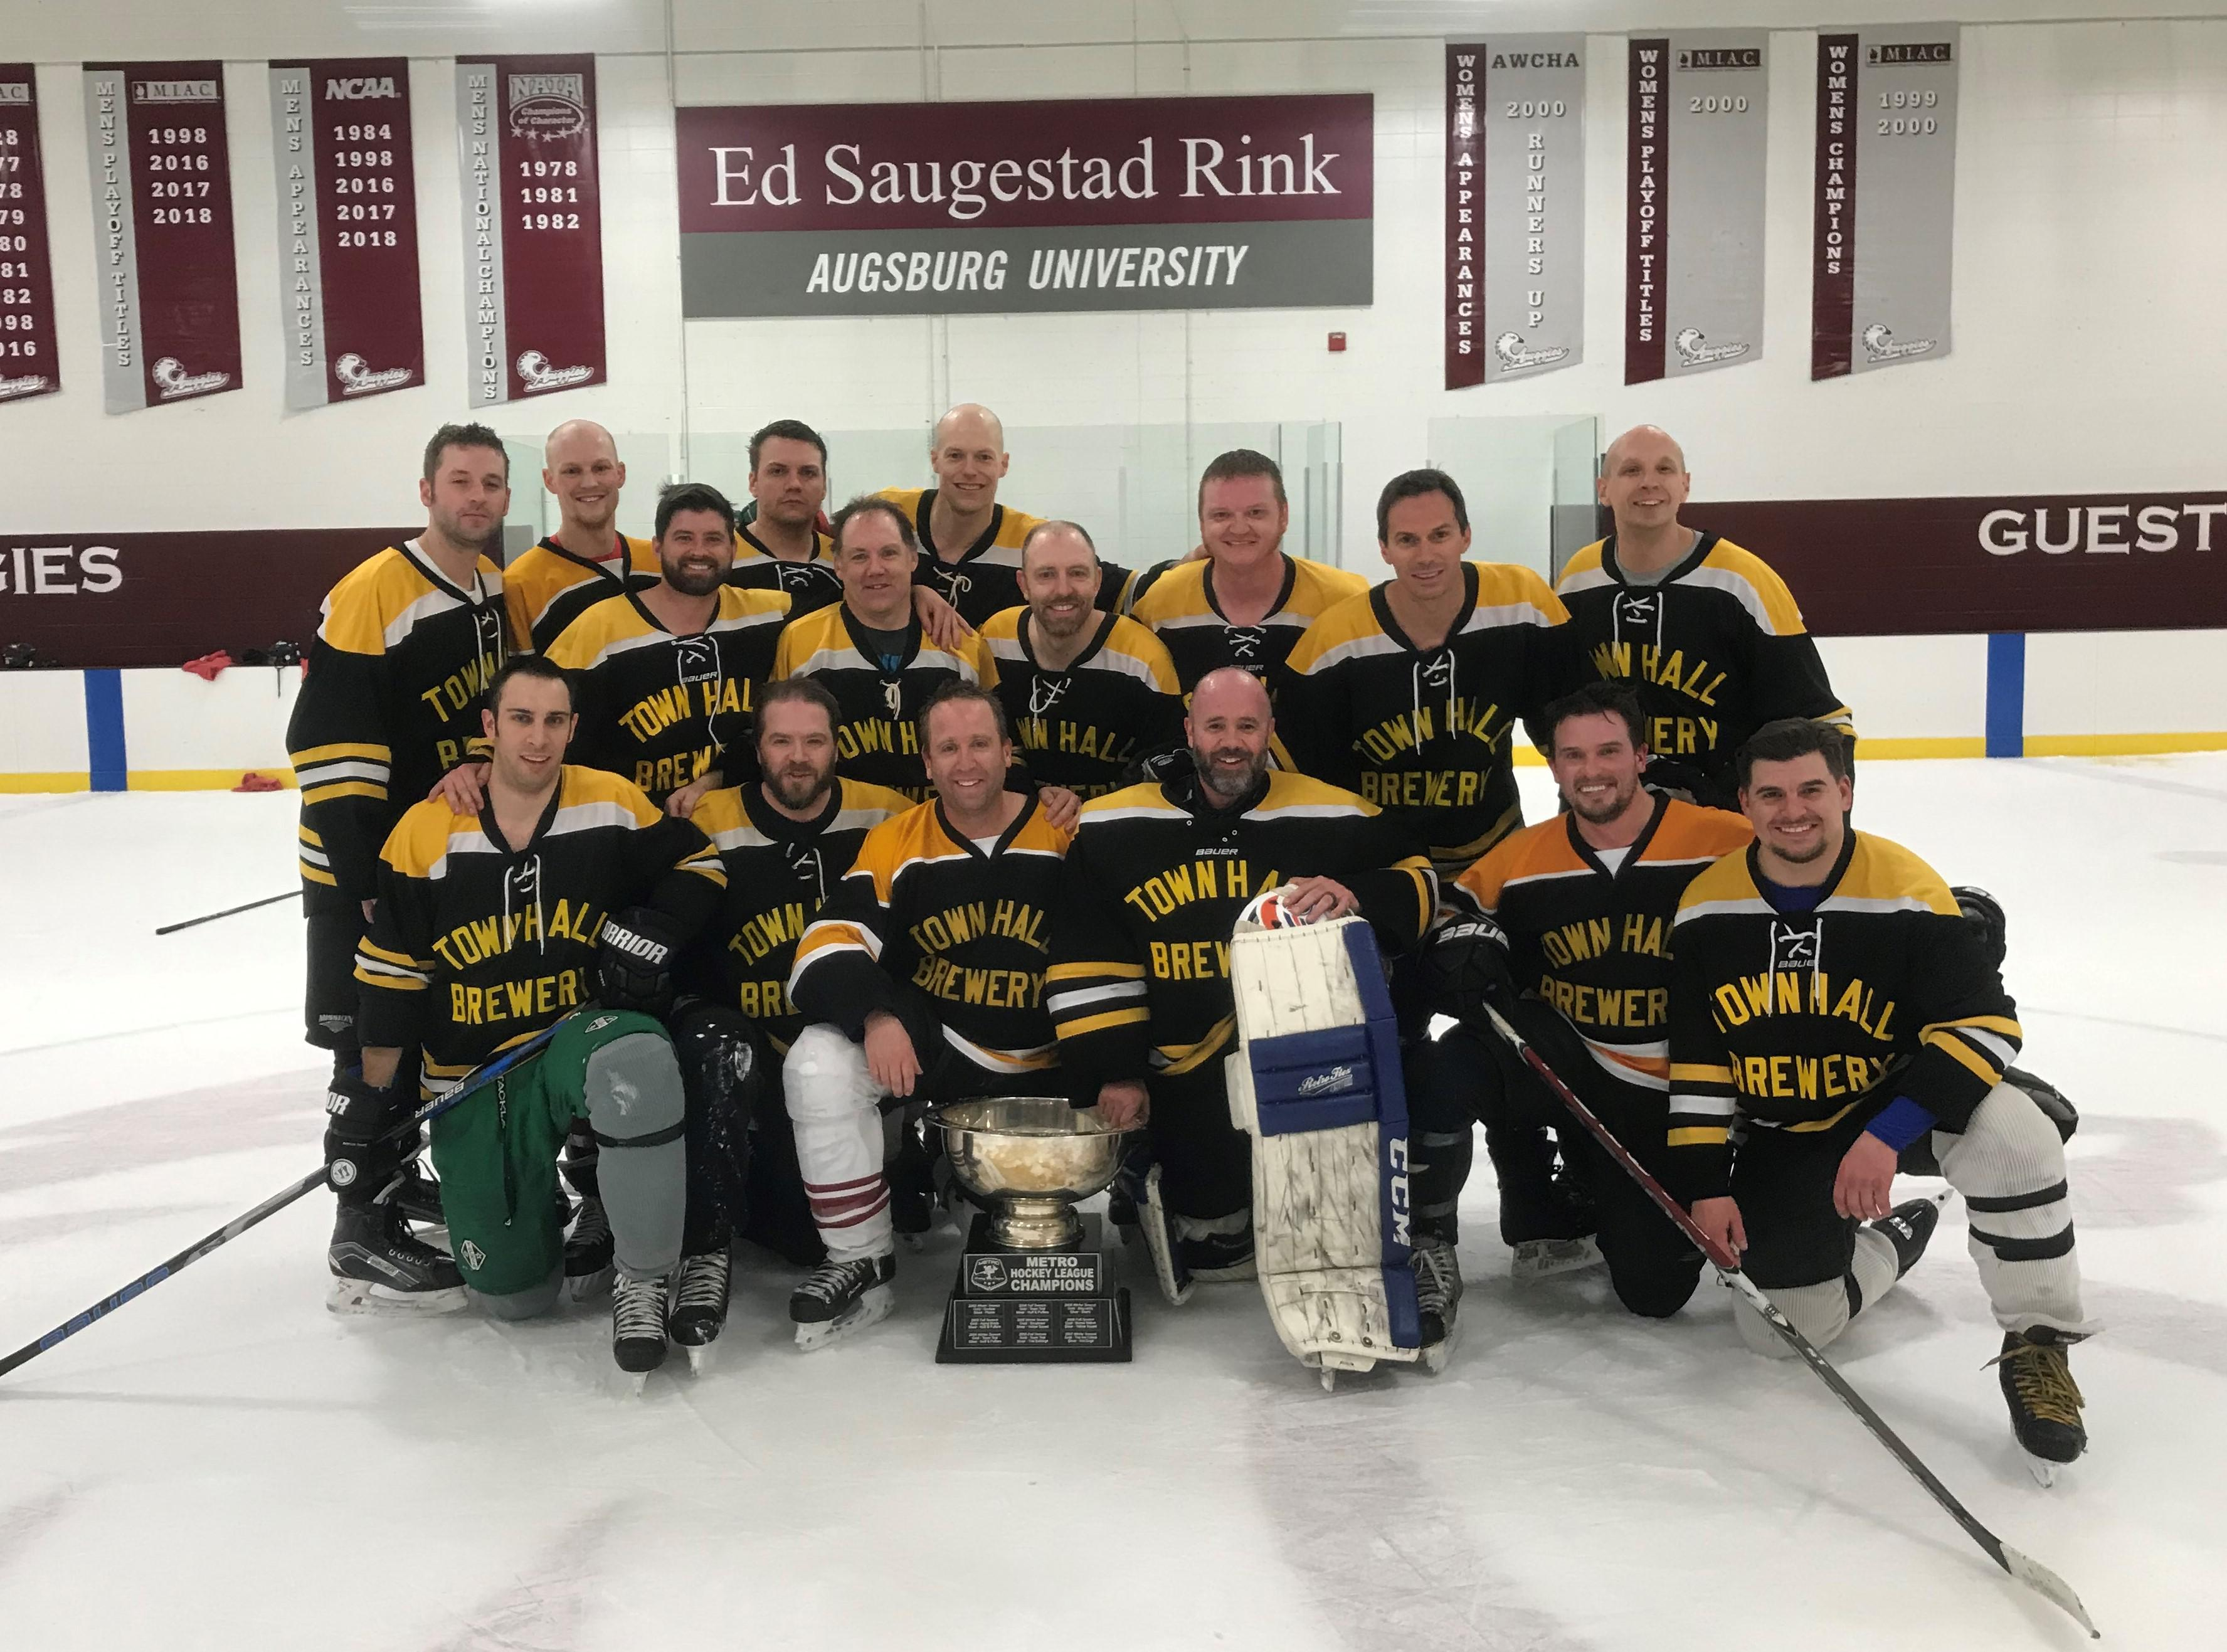 2019 Bronze Champs - Townhall Brewery